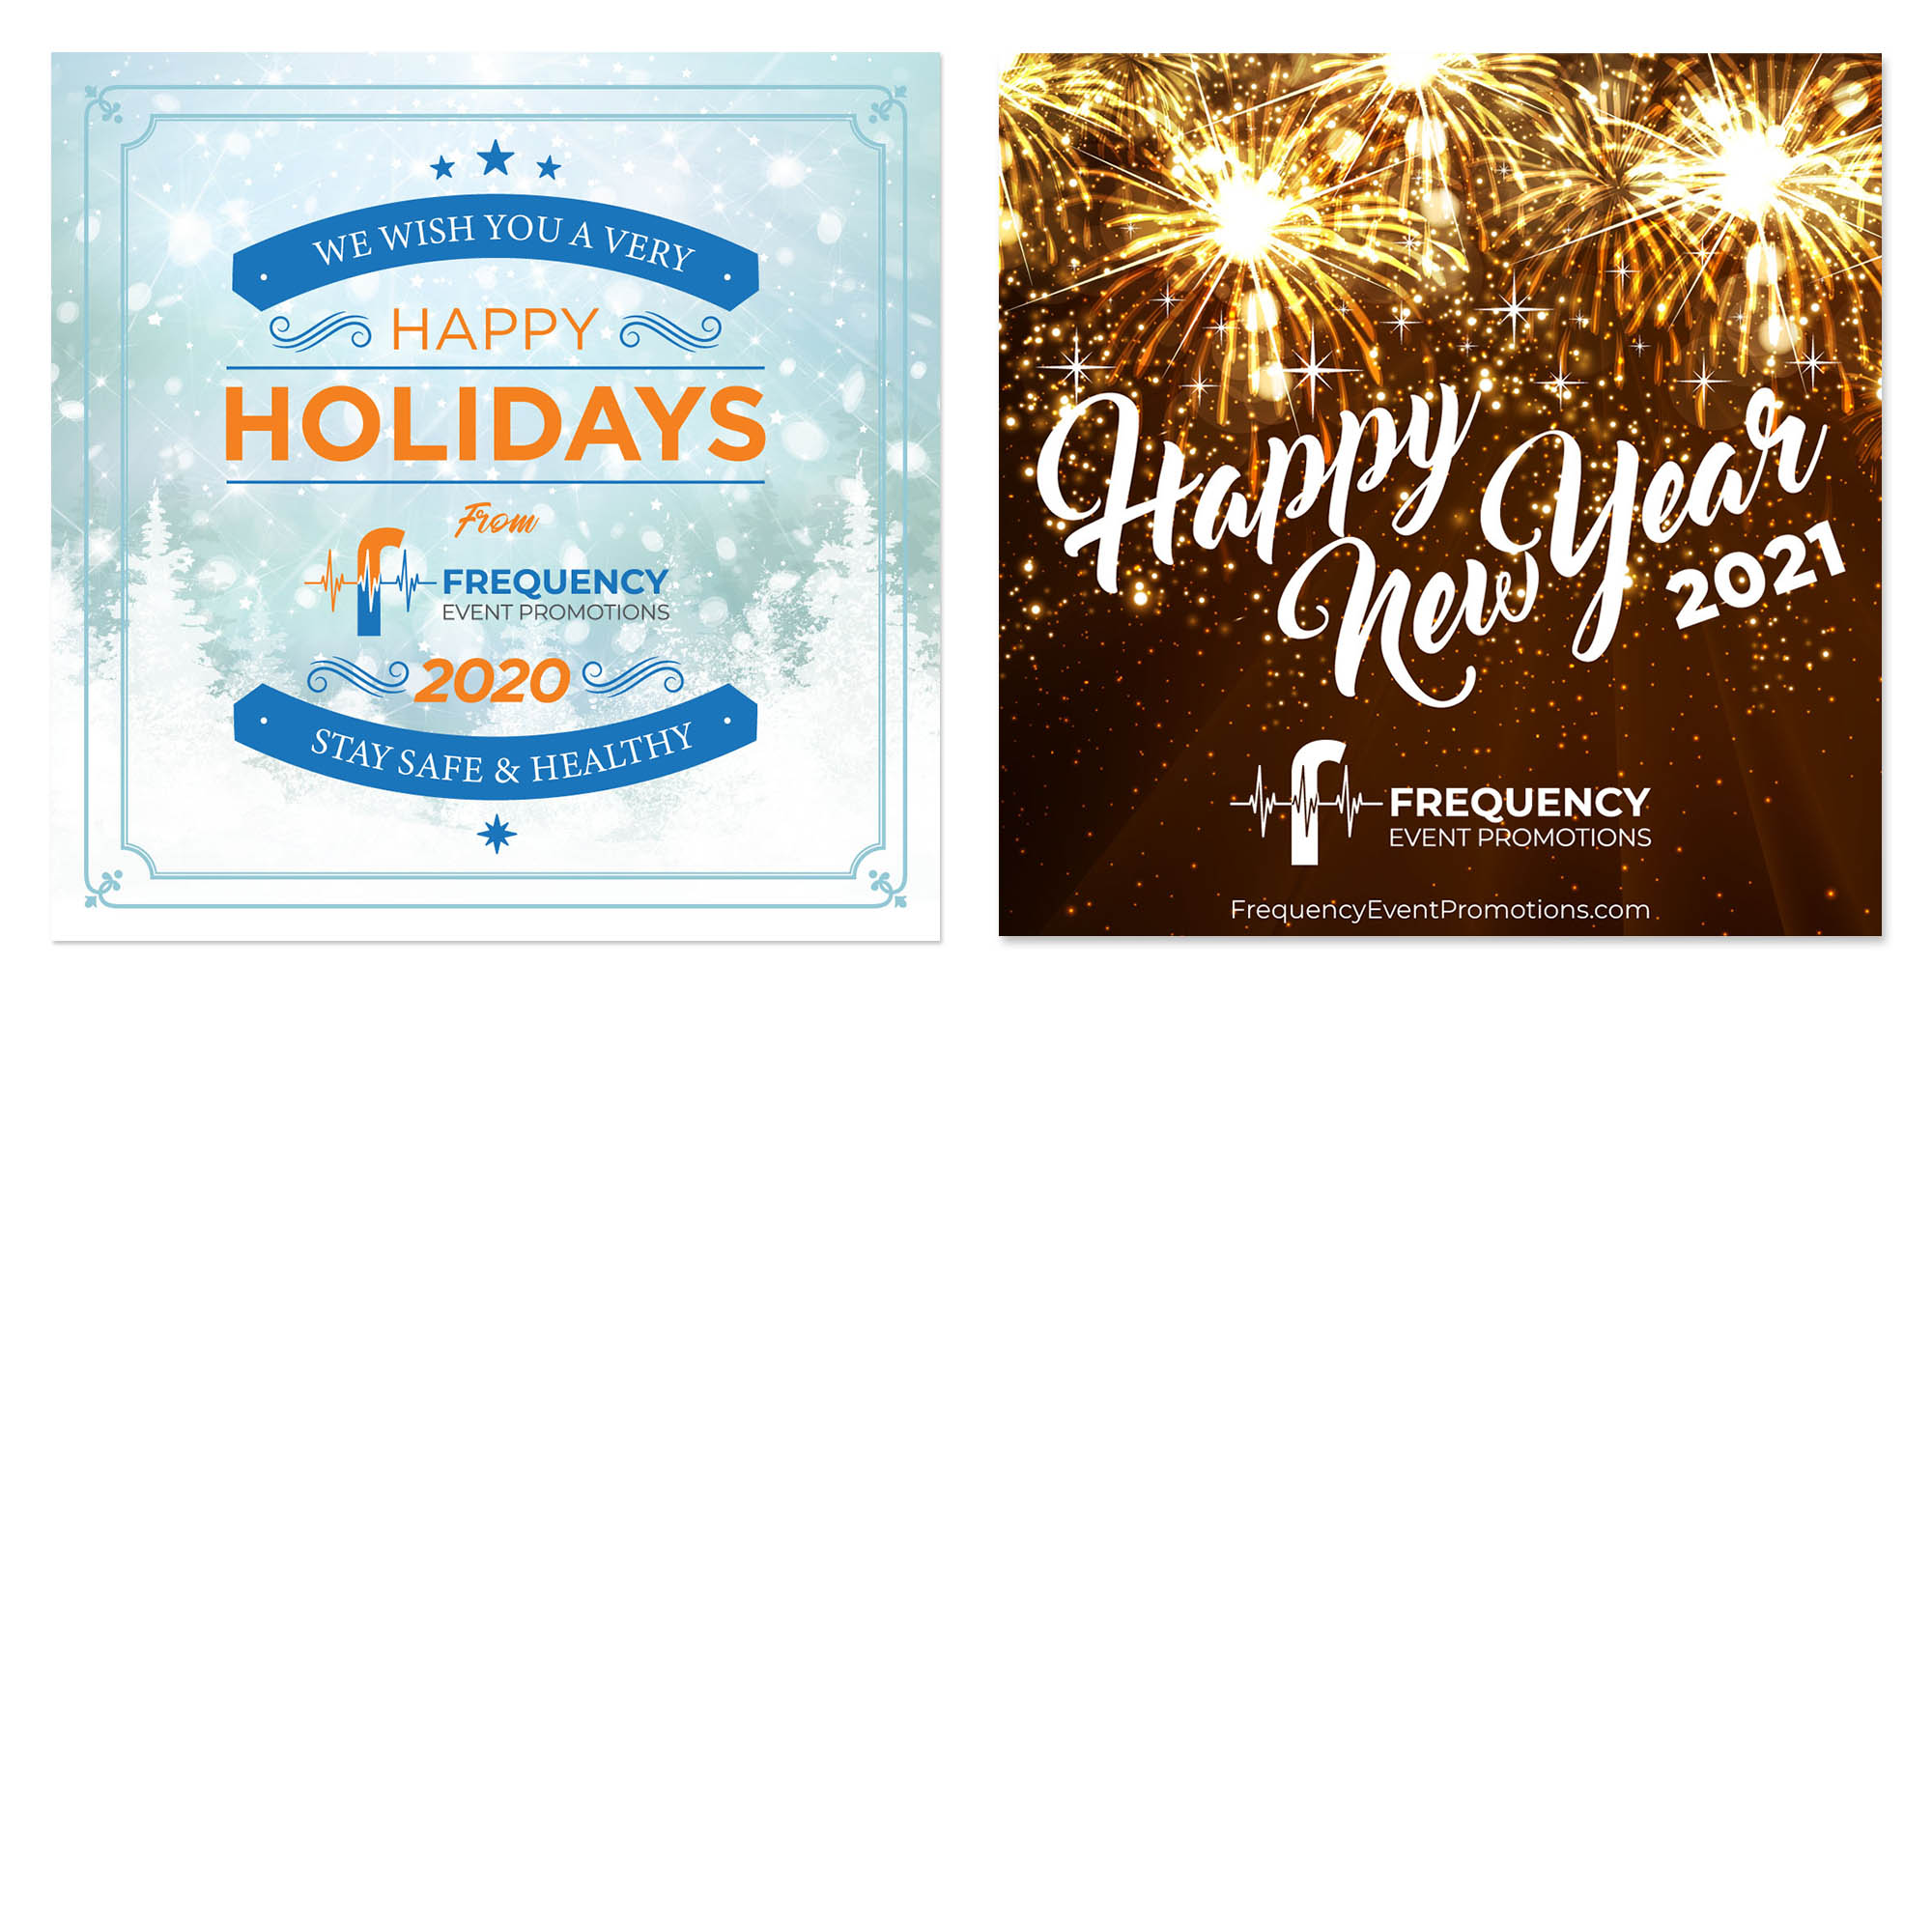 Frequency Event Promotions - Happy Holidays - Social Media Marketing